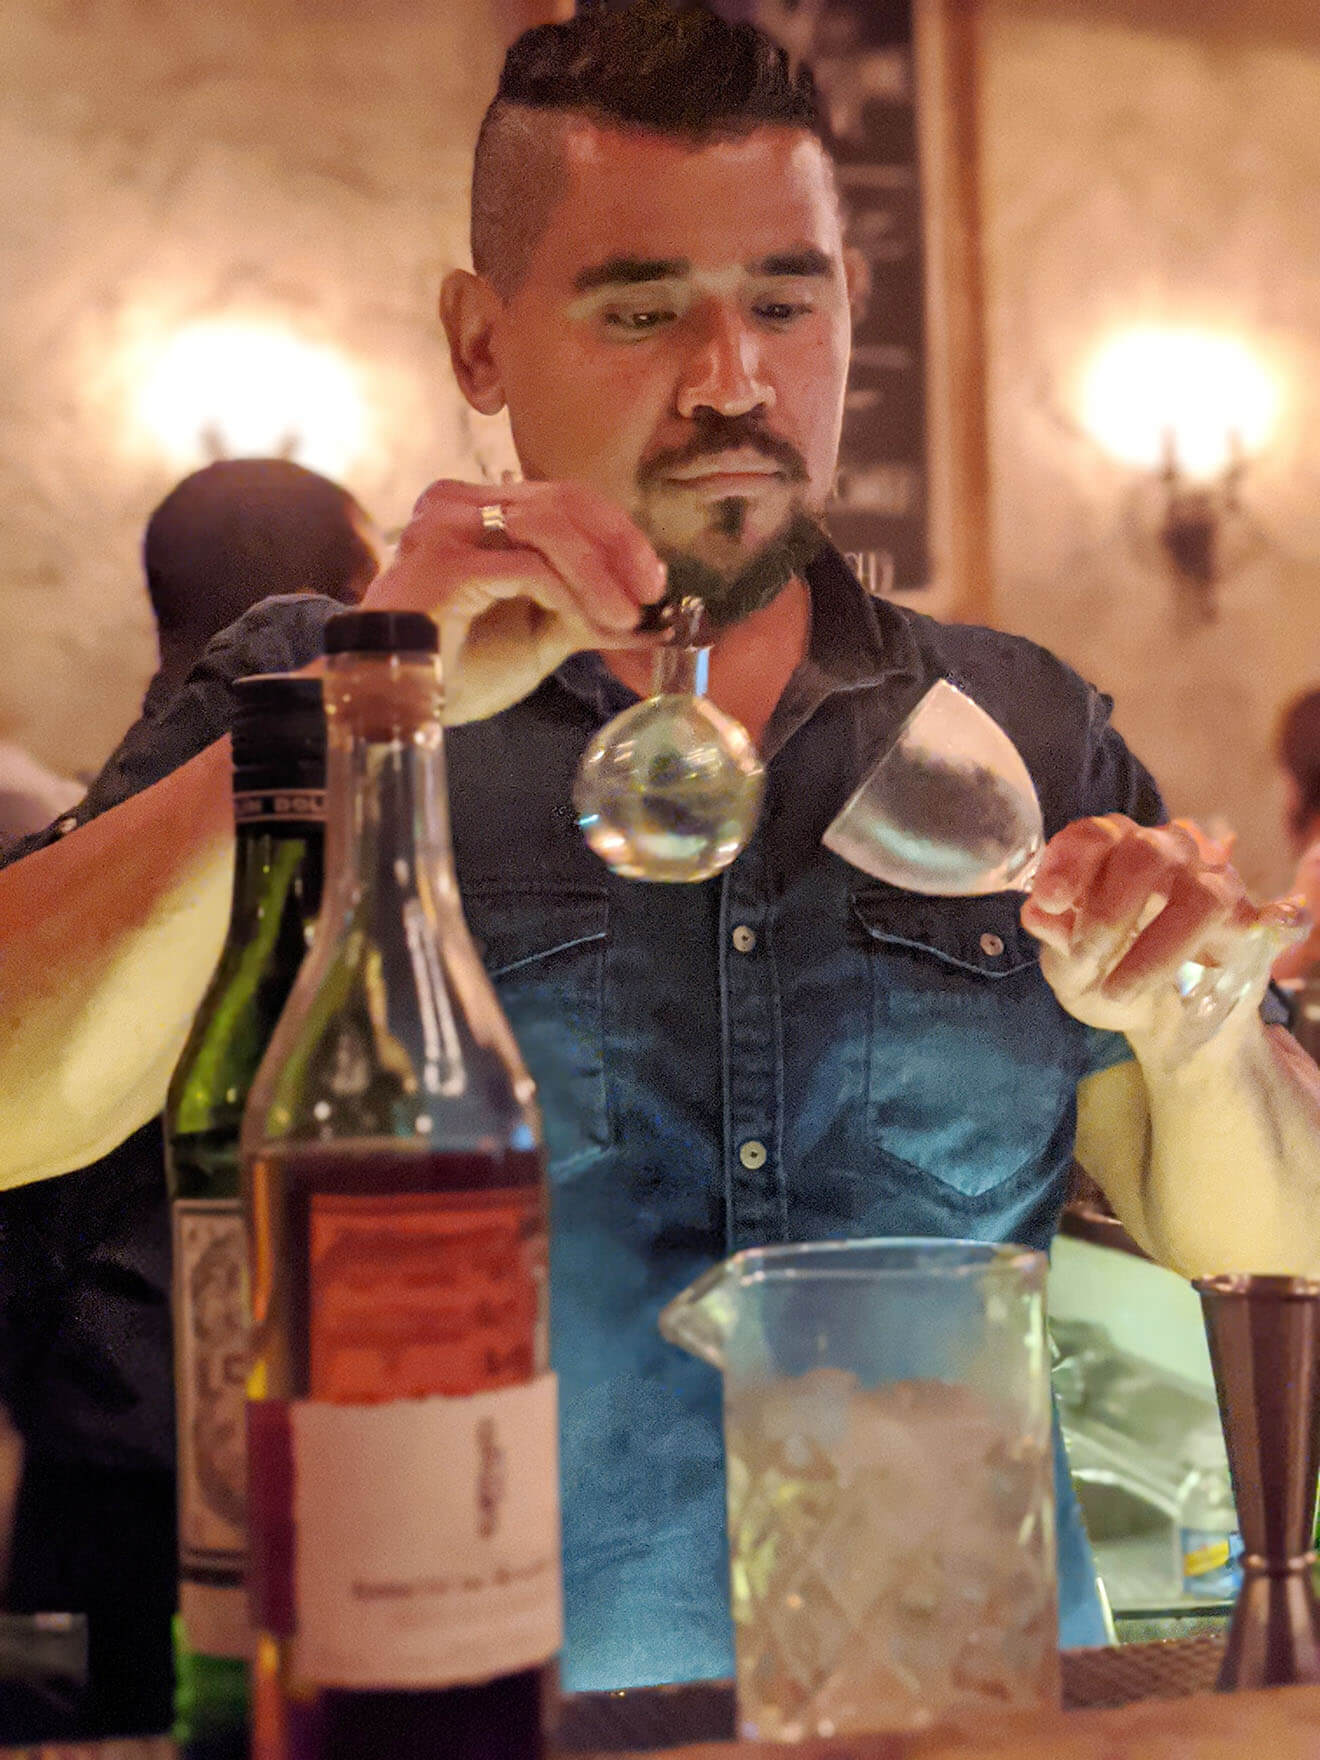 Rony Gonzalez, Bartender, Melrose Umbrella Co.